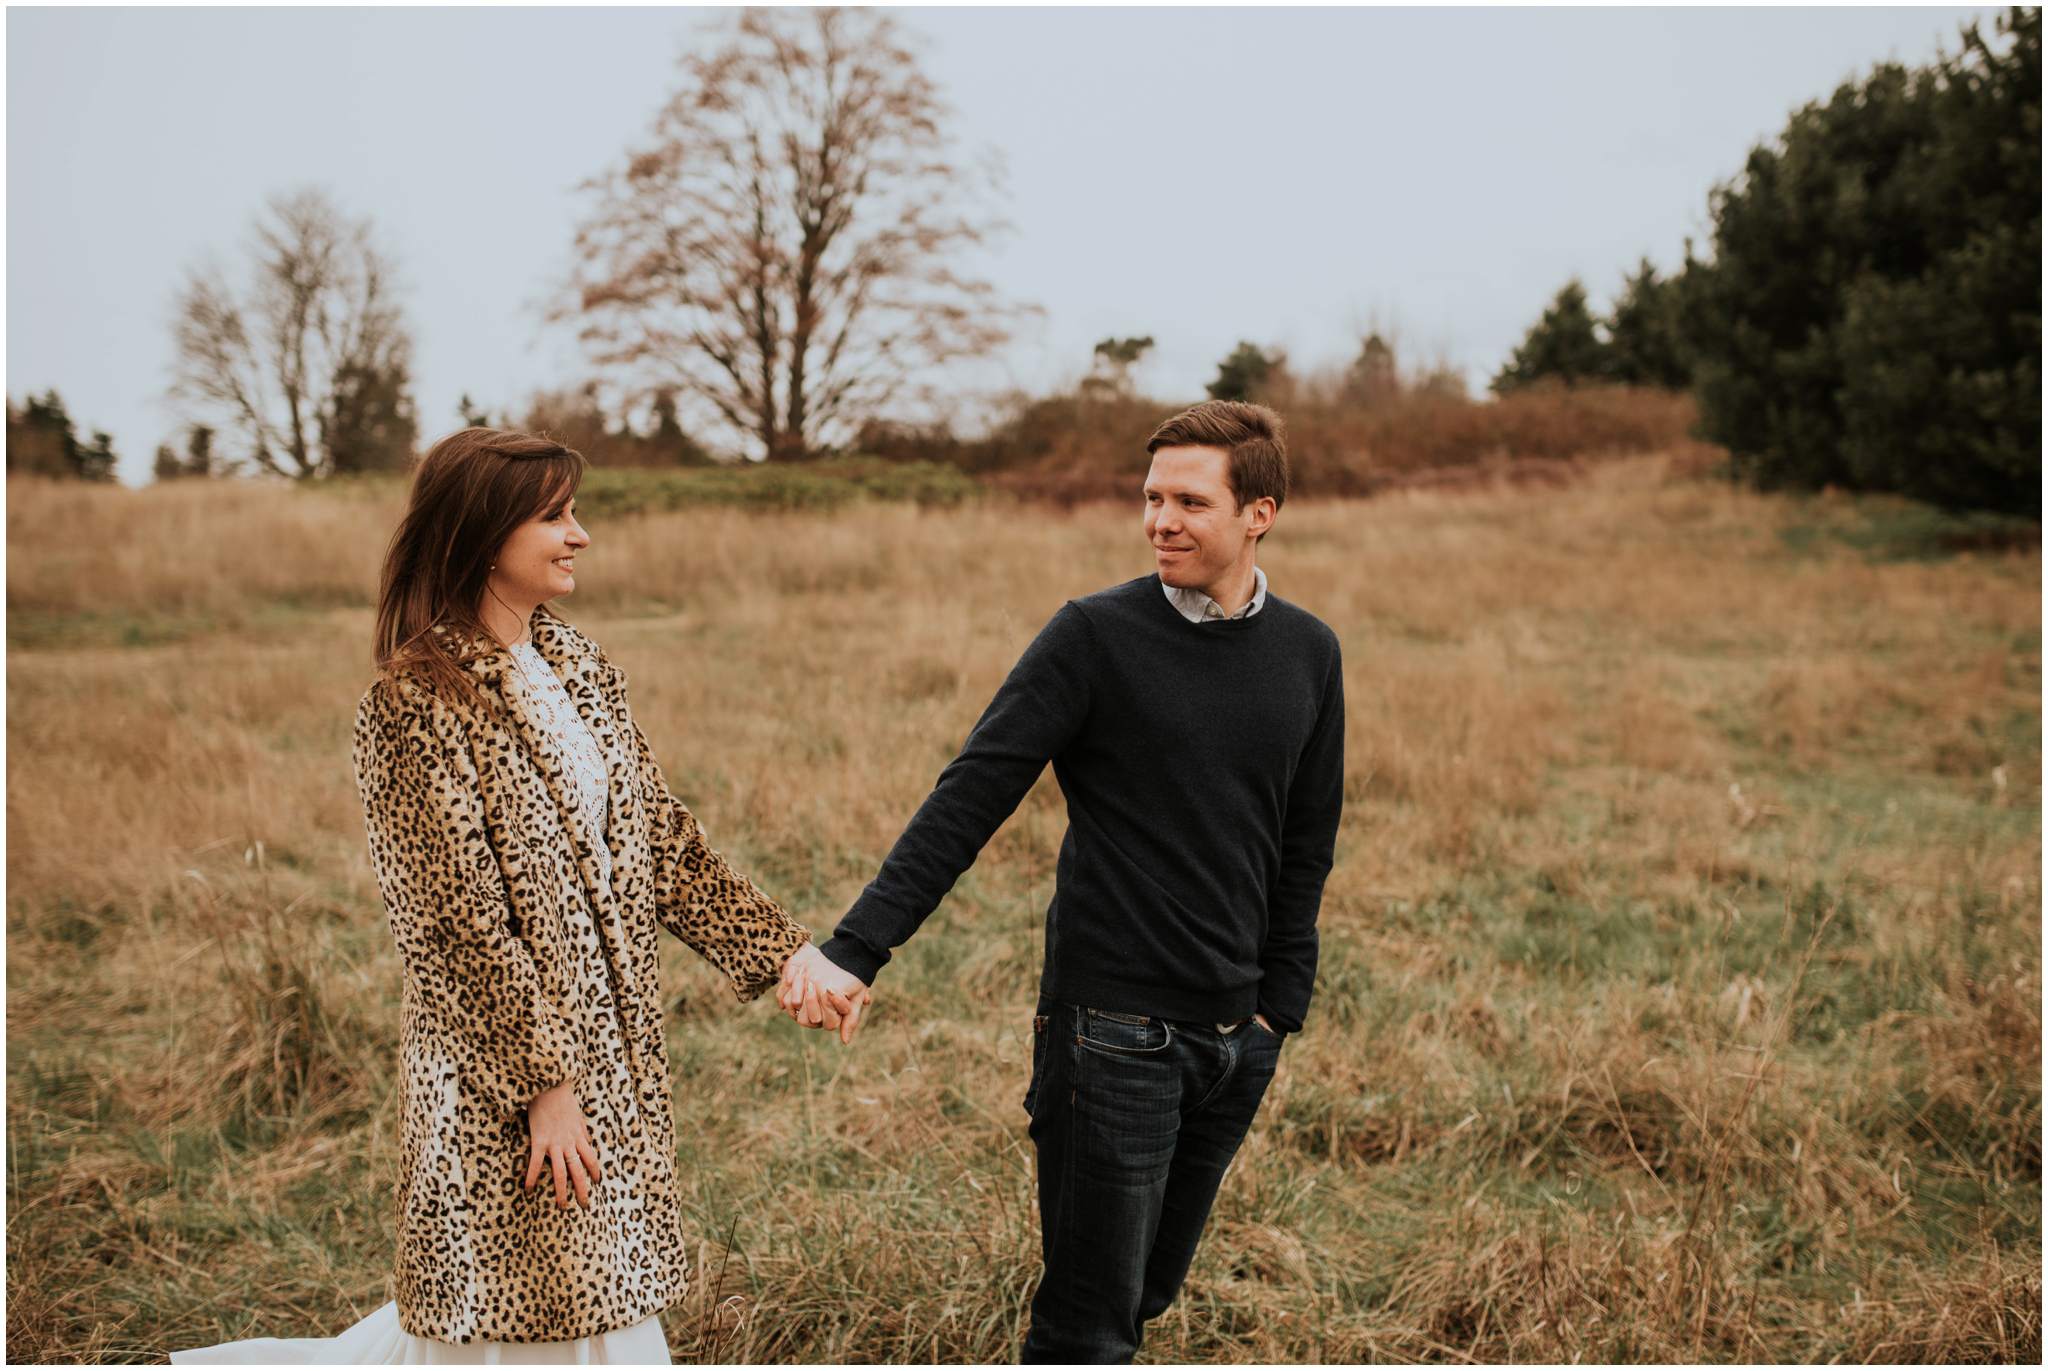 emily-and-matthew-seattle-wedding-photographer-discovery-park-engagement-session-012.jpg